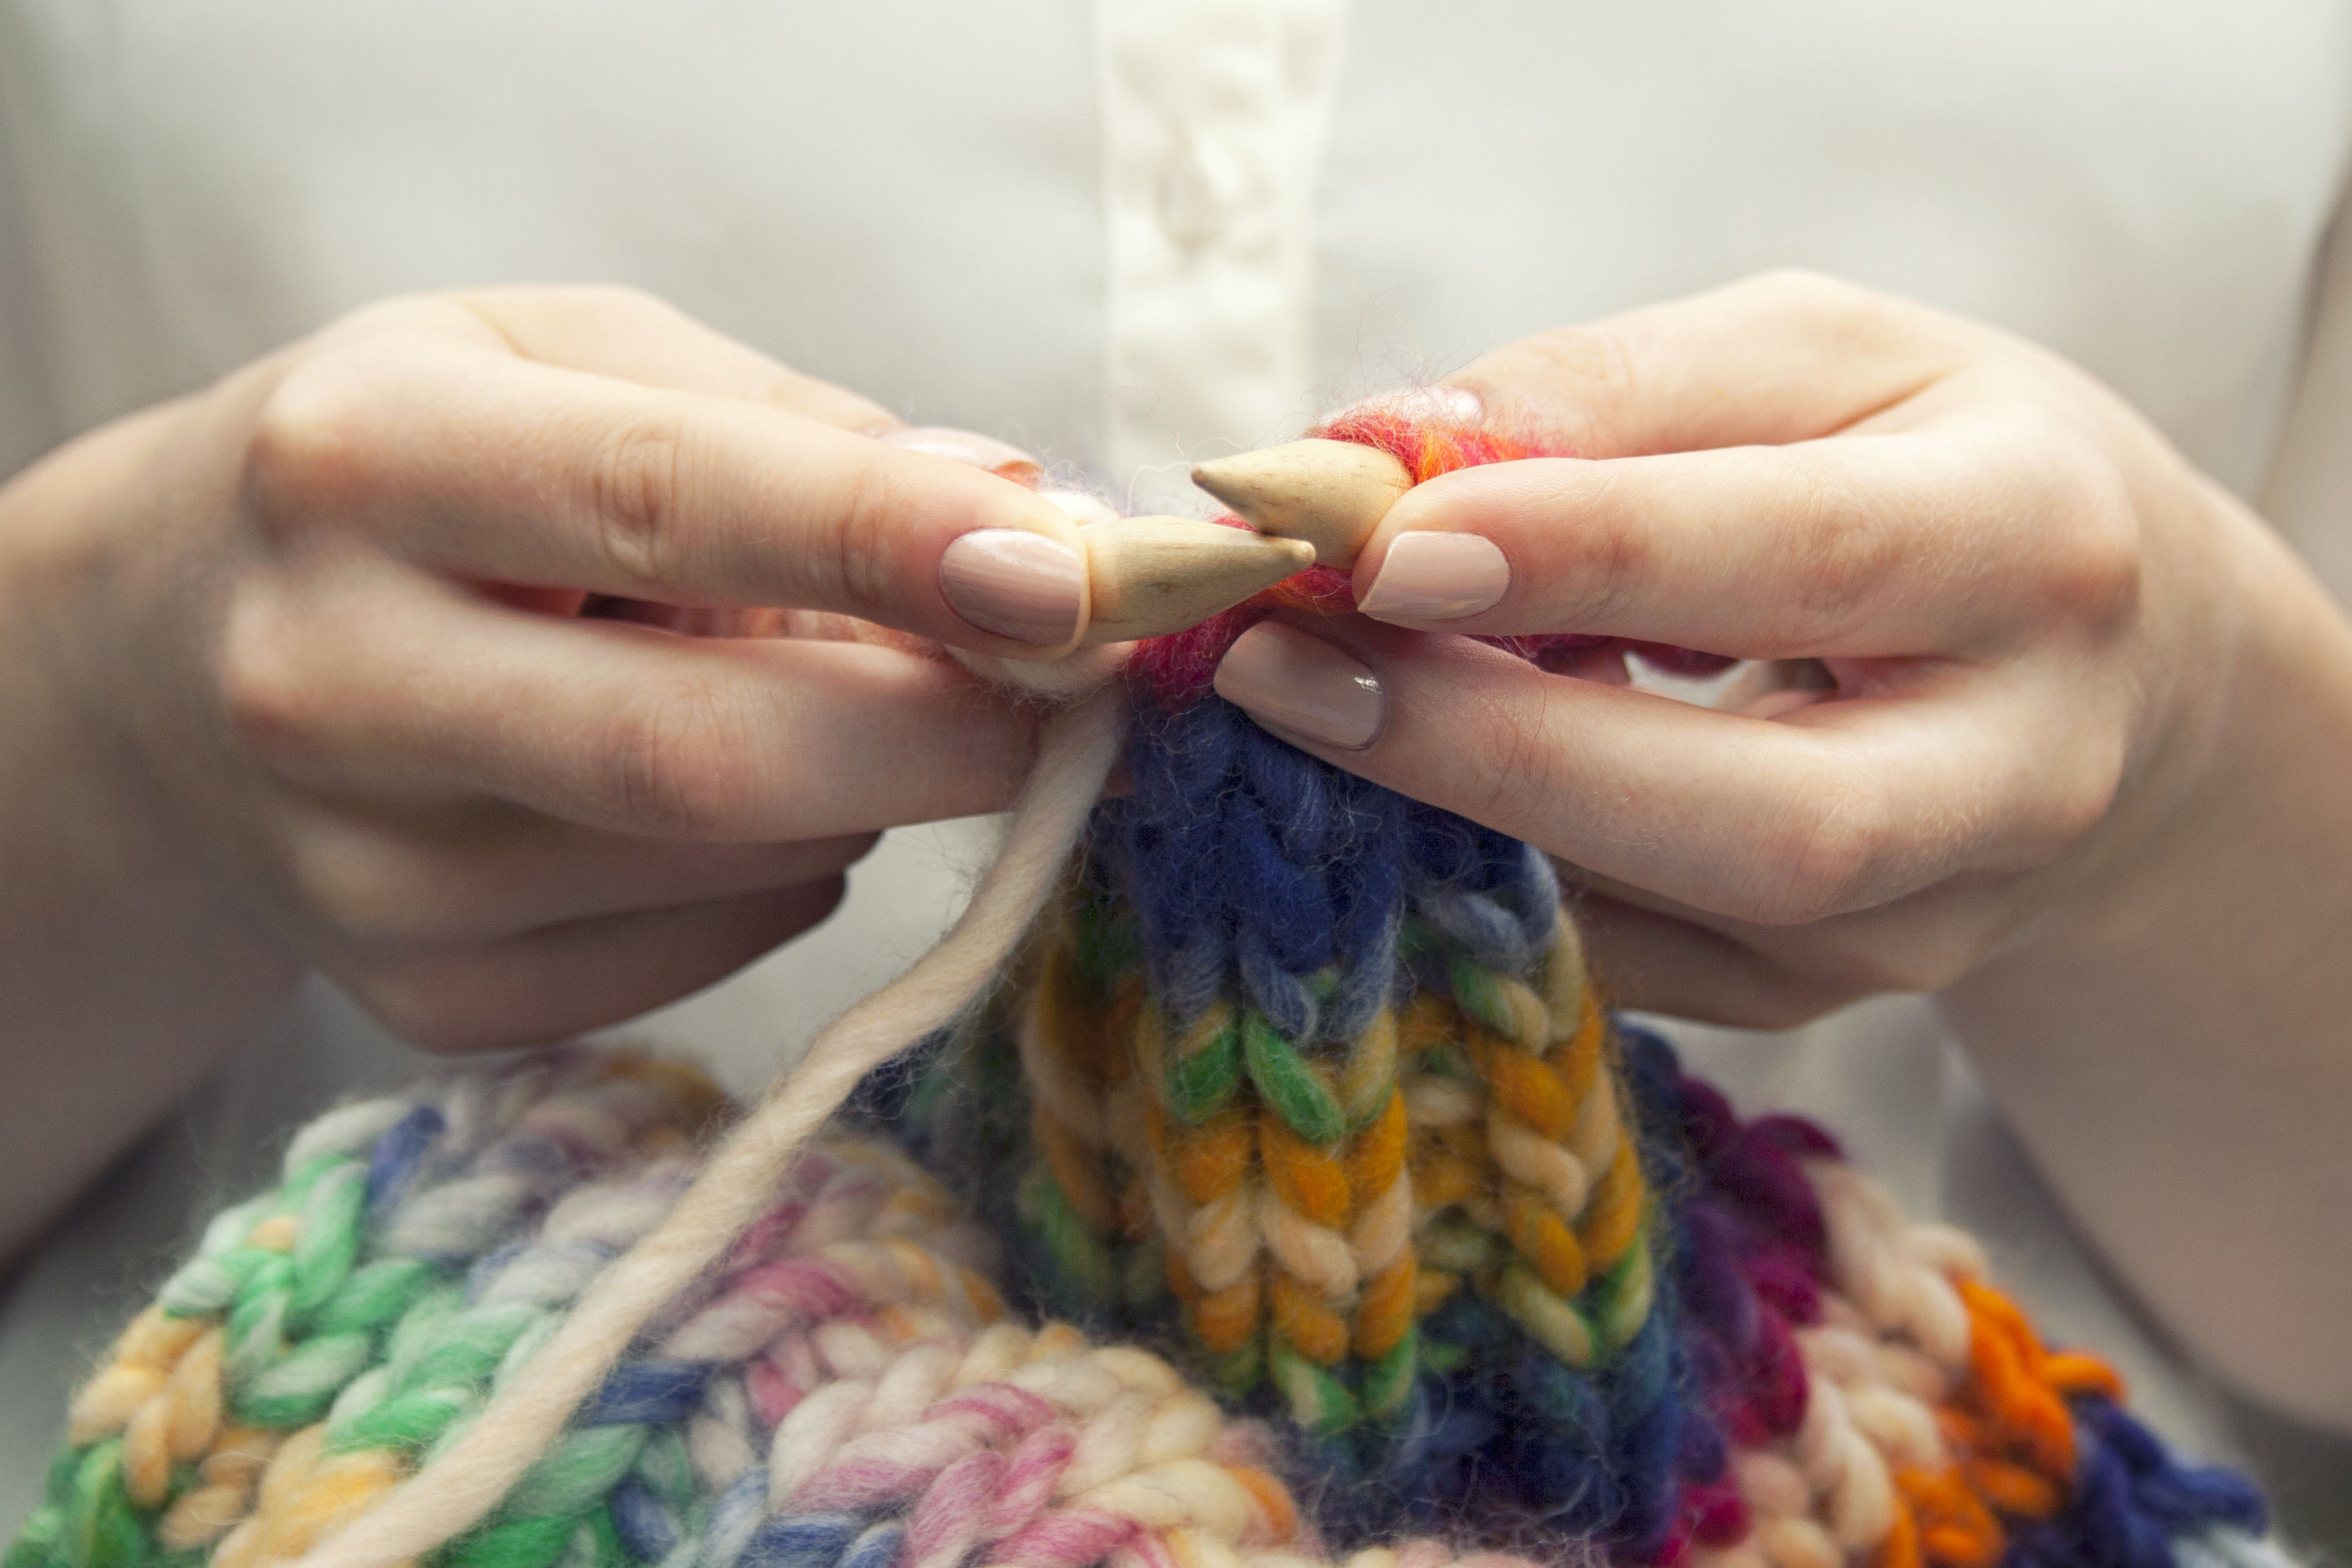 Knitting Therapy? More Americans Learning to Knit for Stress Relief